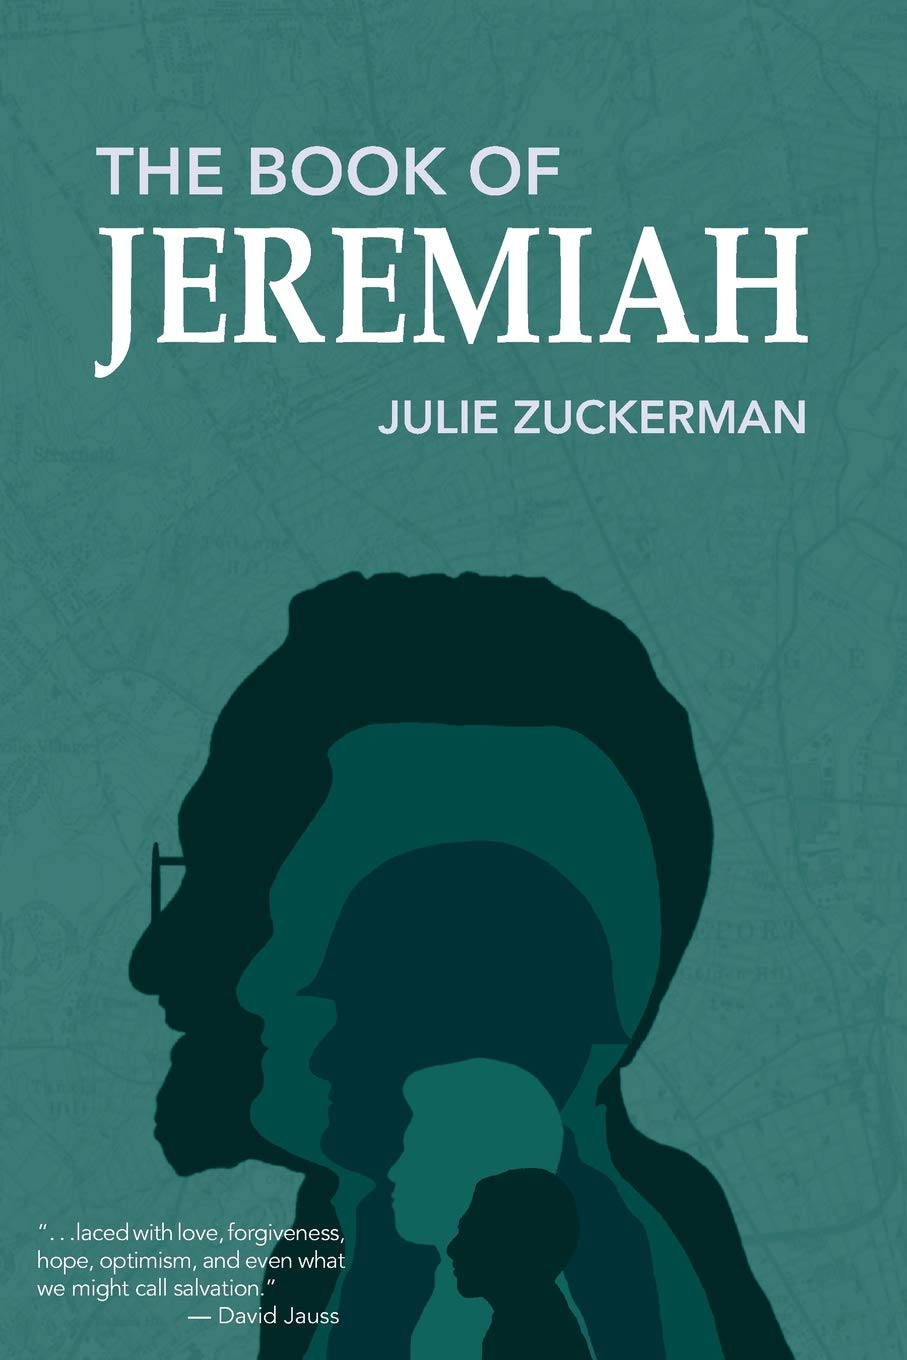 The Book of Jeremiah by Julie Zuckerman